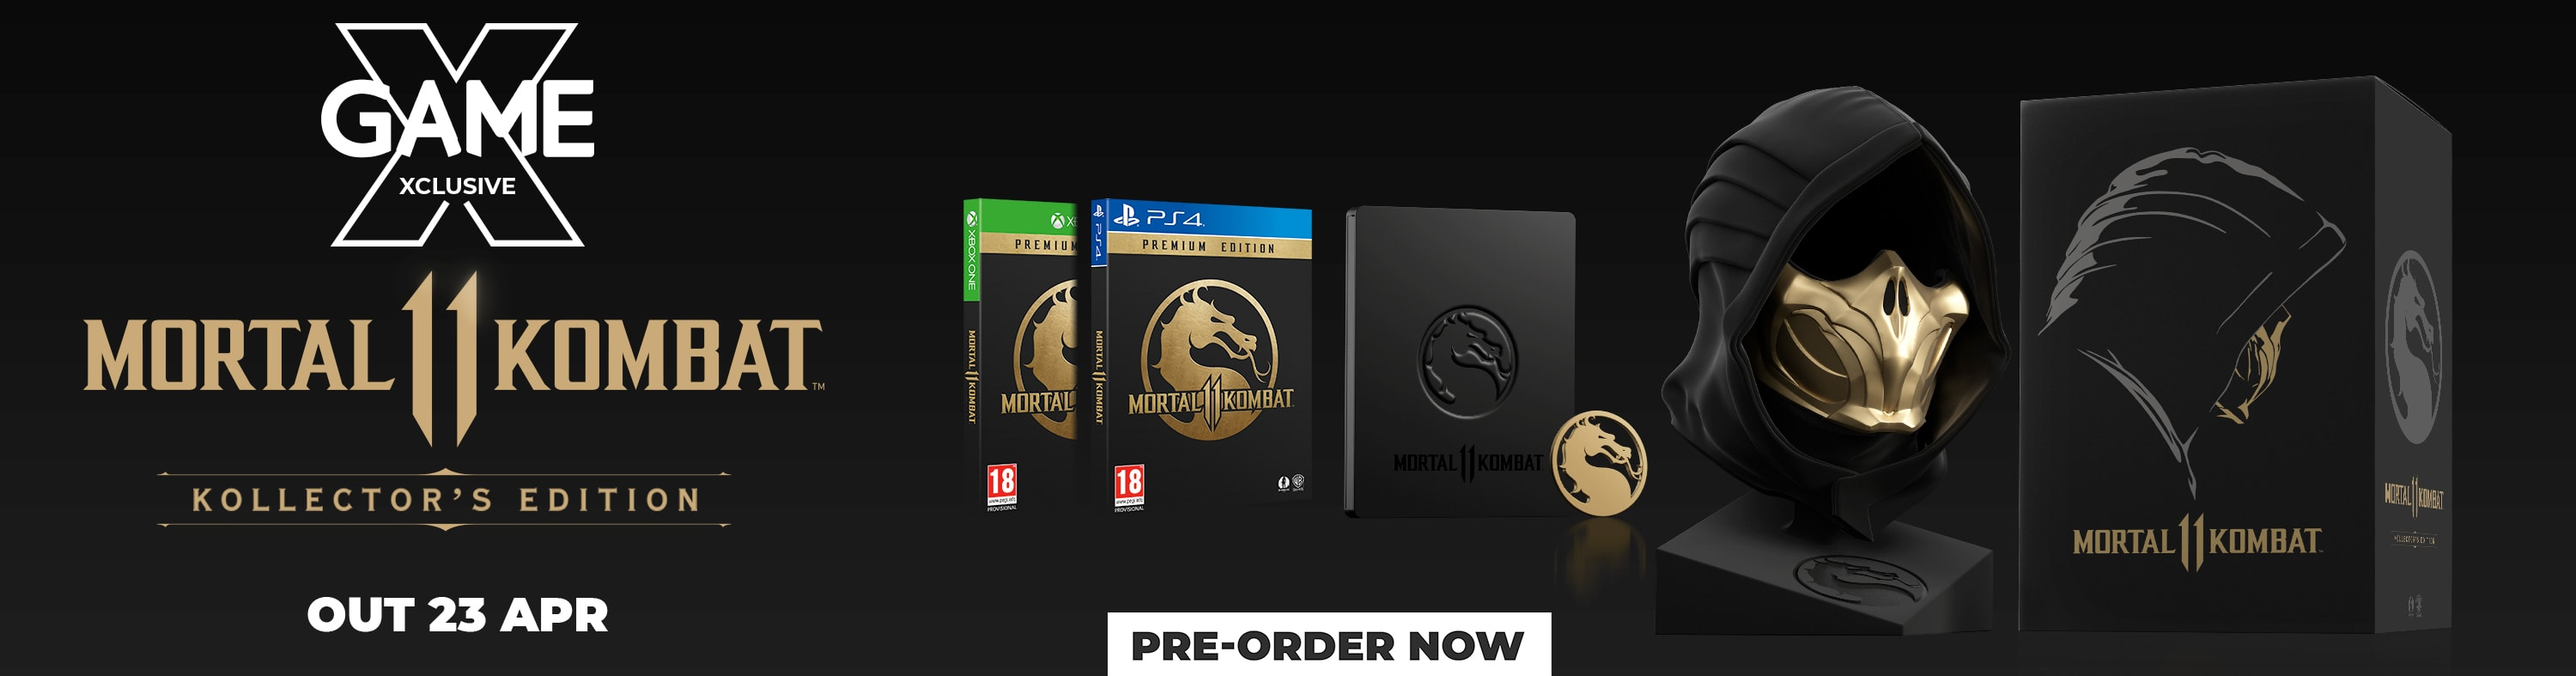 Mortal Kombat 11 Kollector's Edition - Pre-Order Now